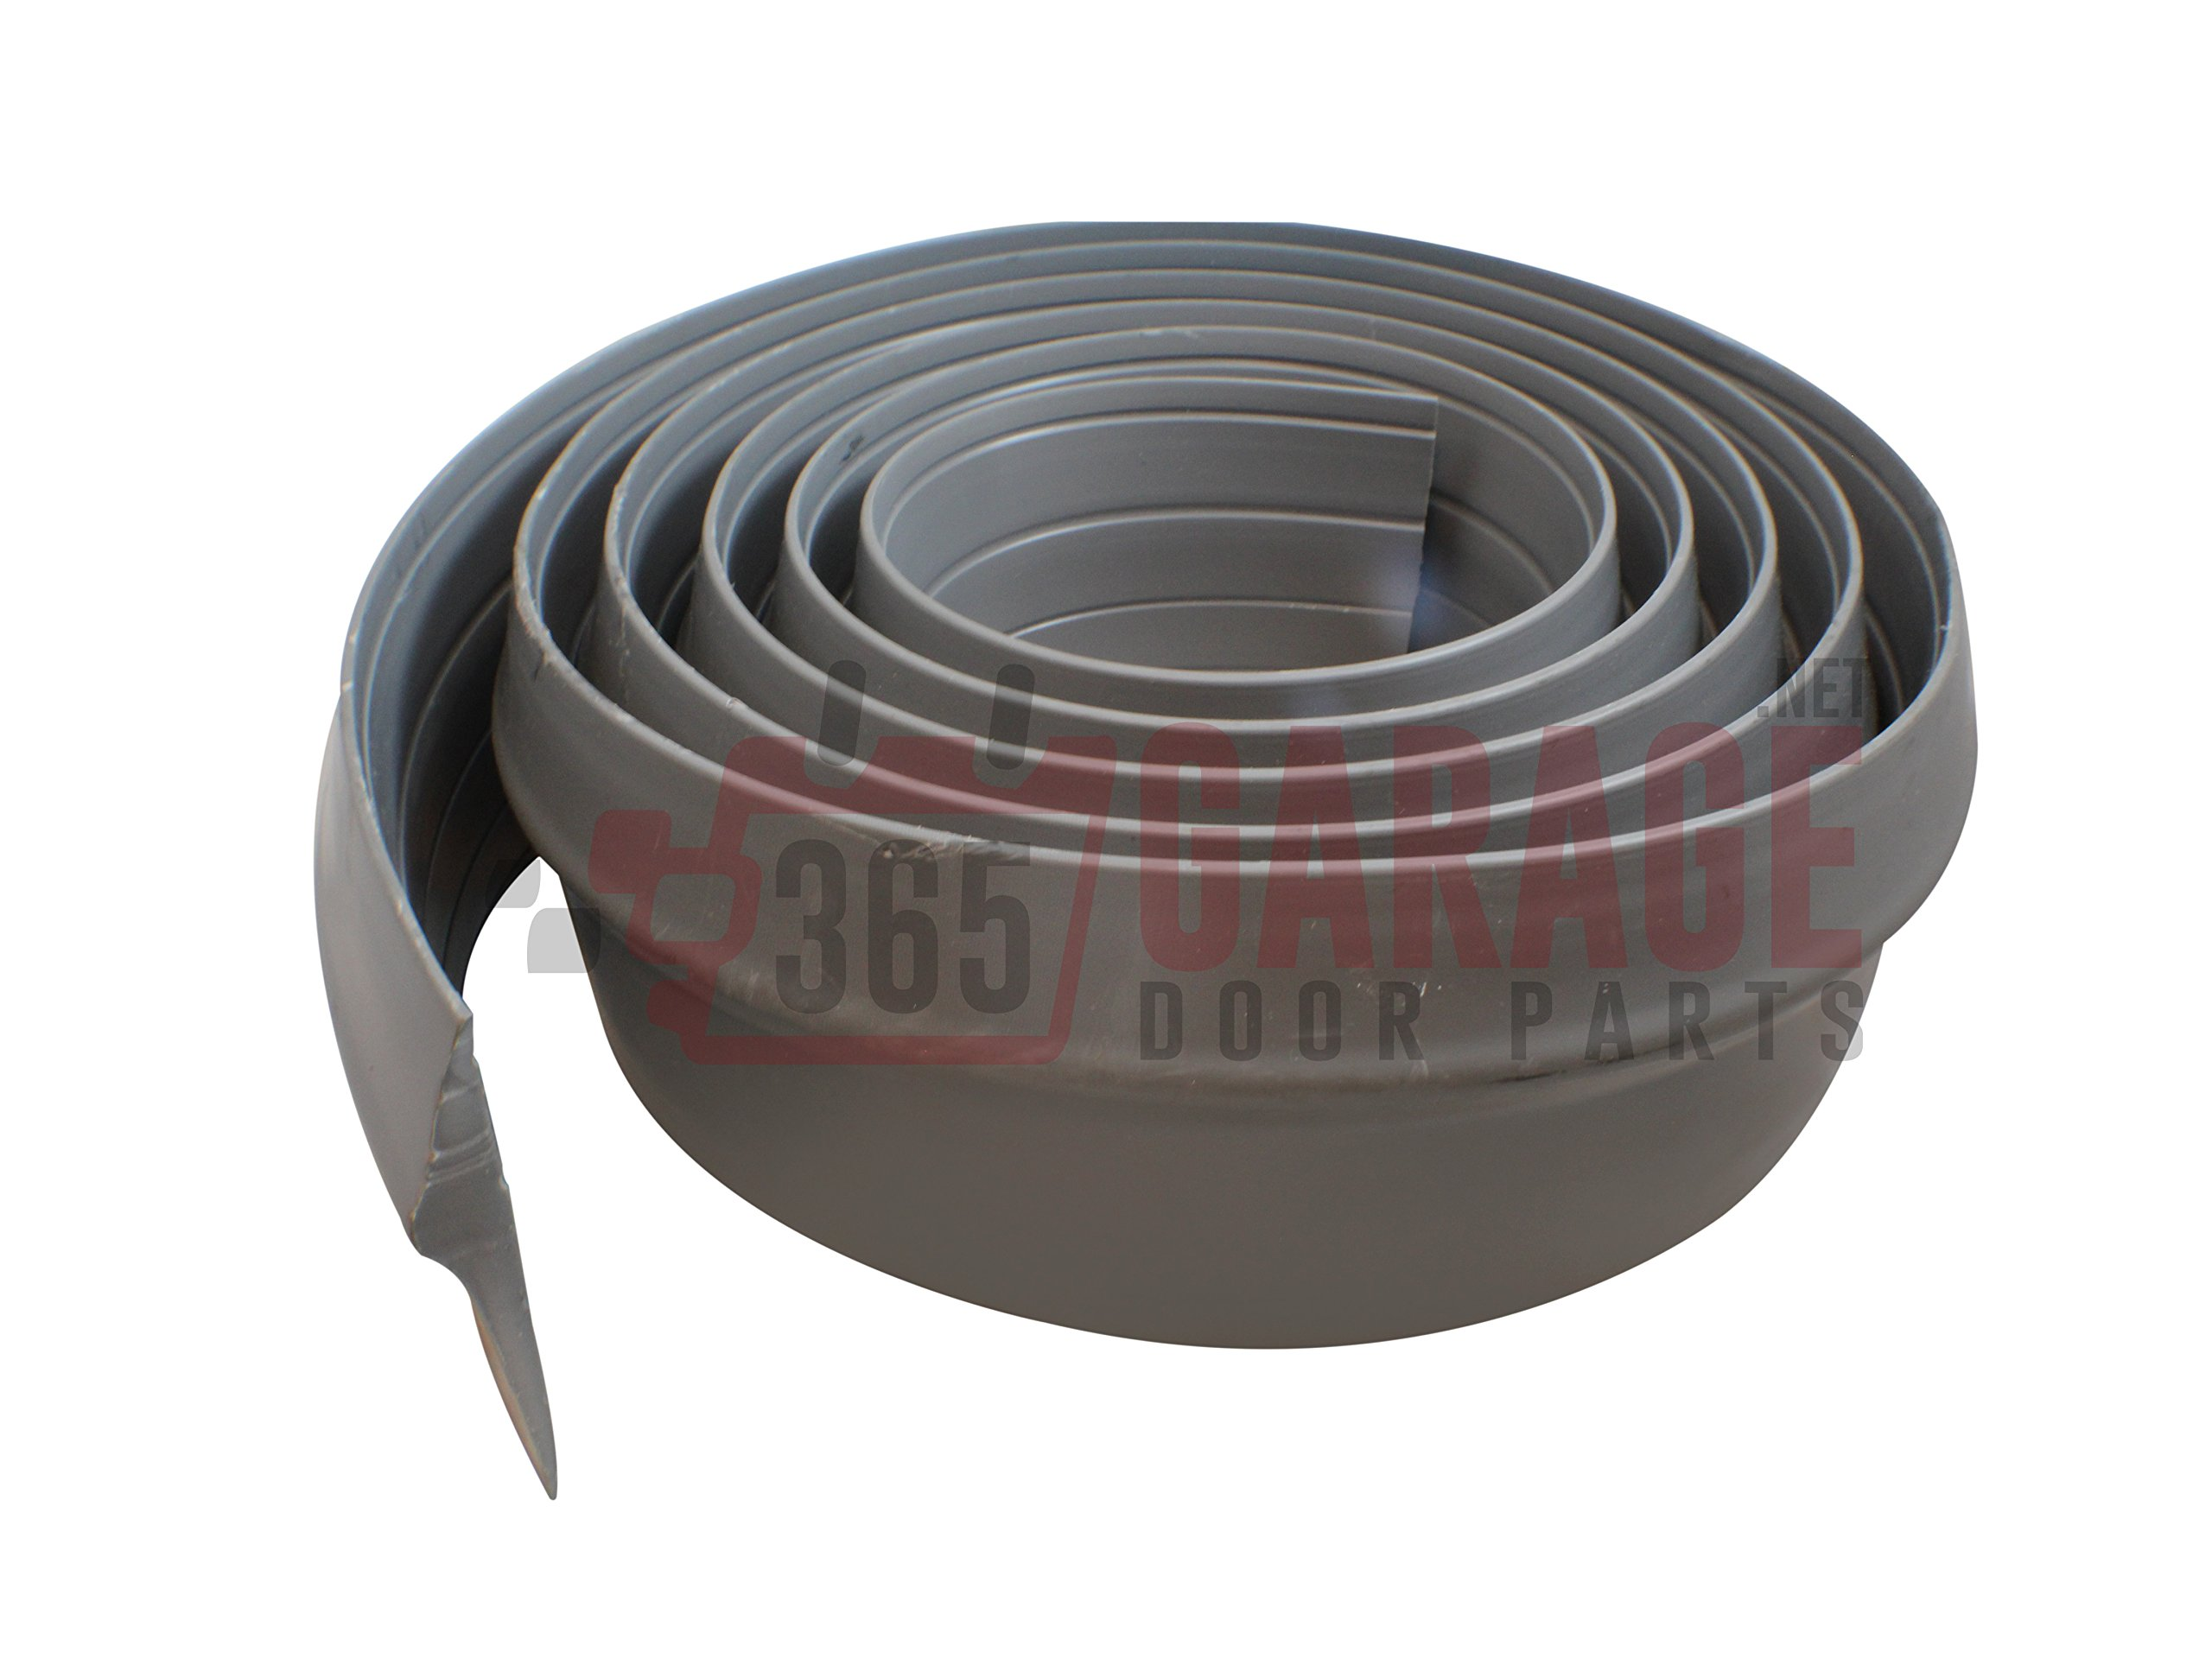 Park Smart 16 Feet Garage Door Seal, Gray